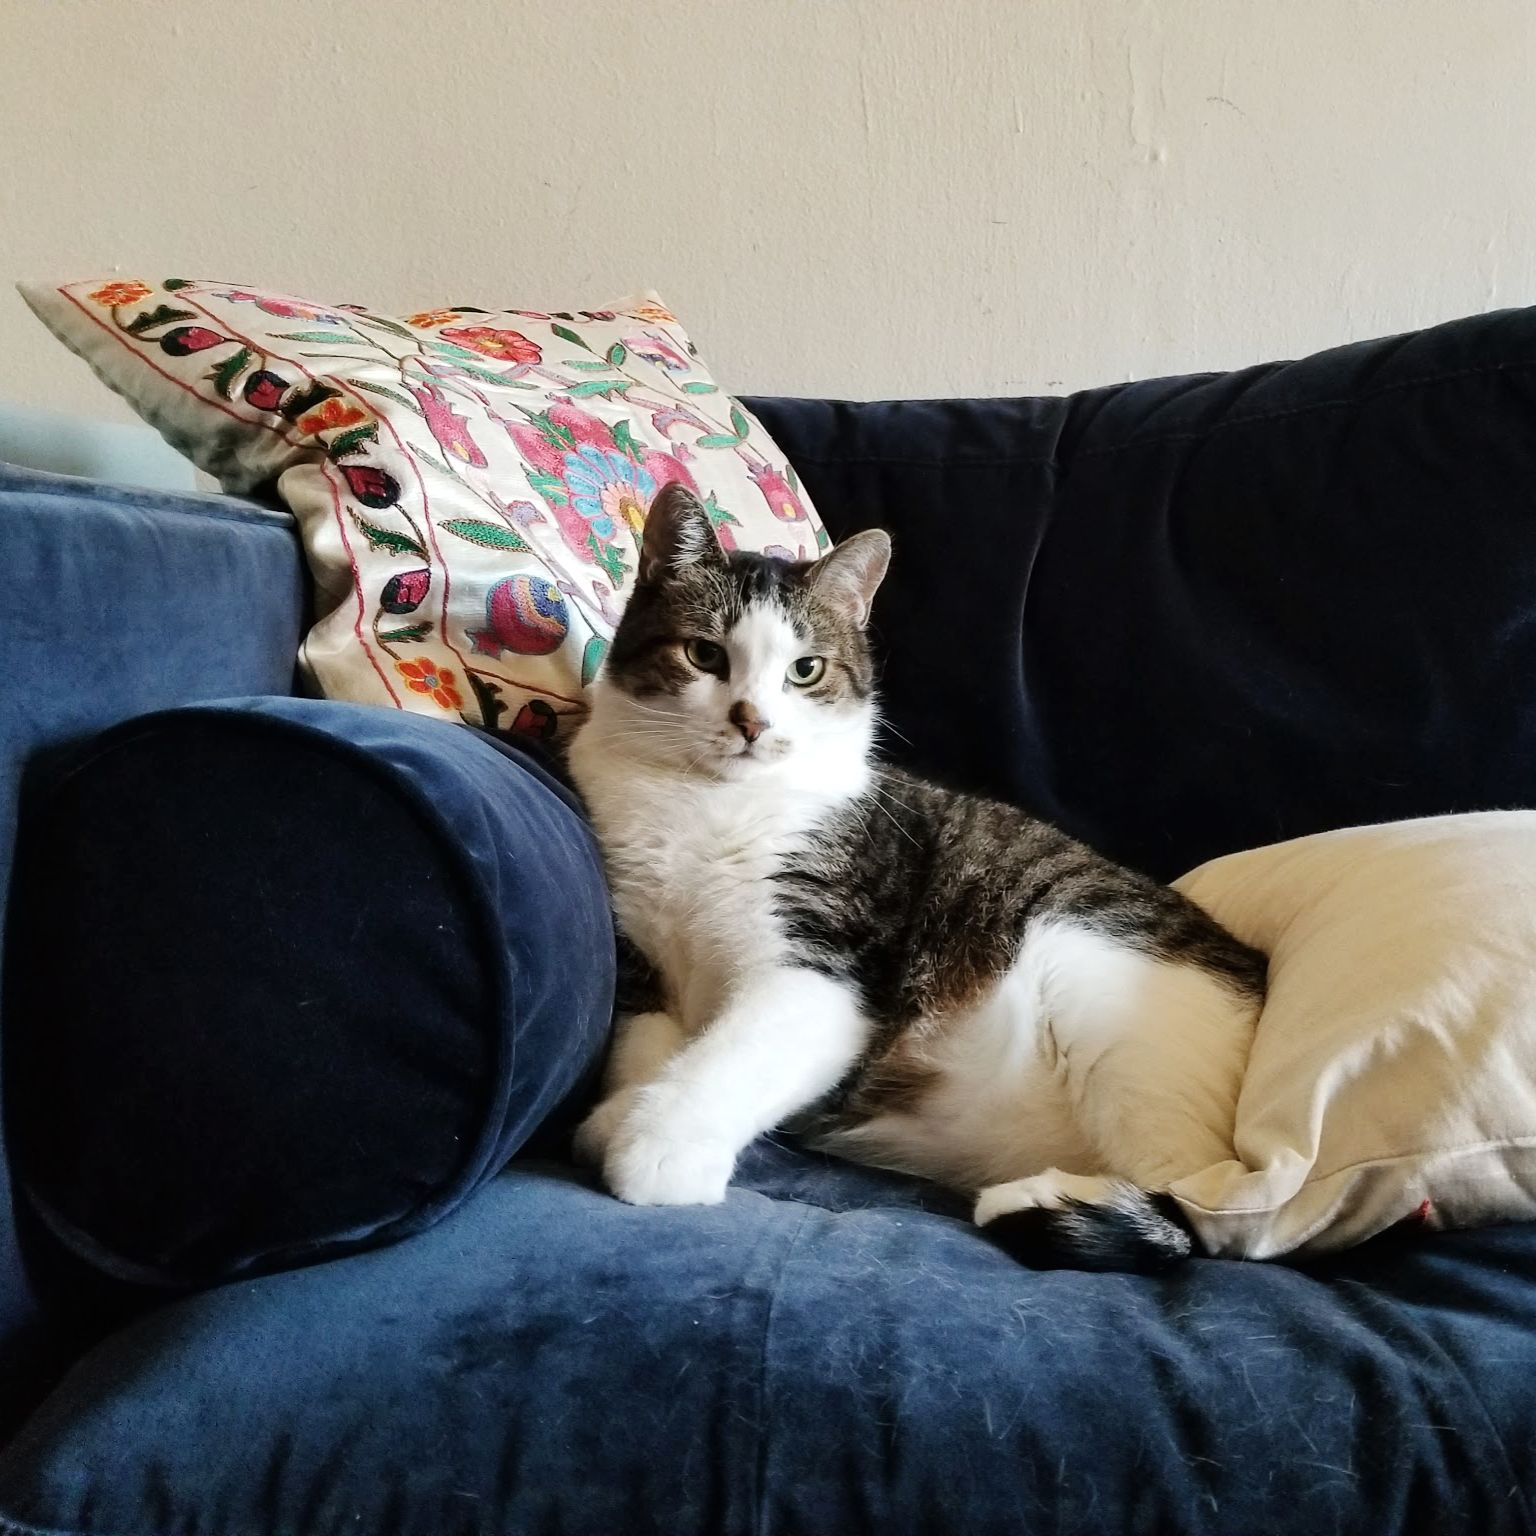 Mr. Petey the Cat (aka: King of the couch!)